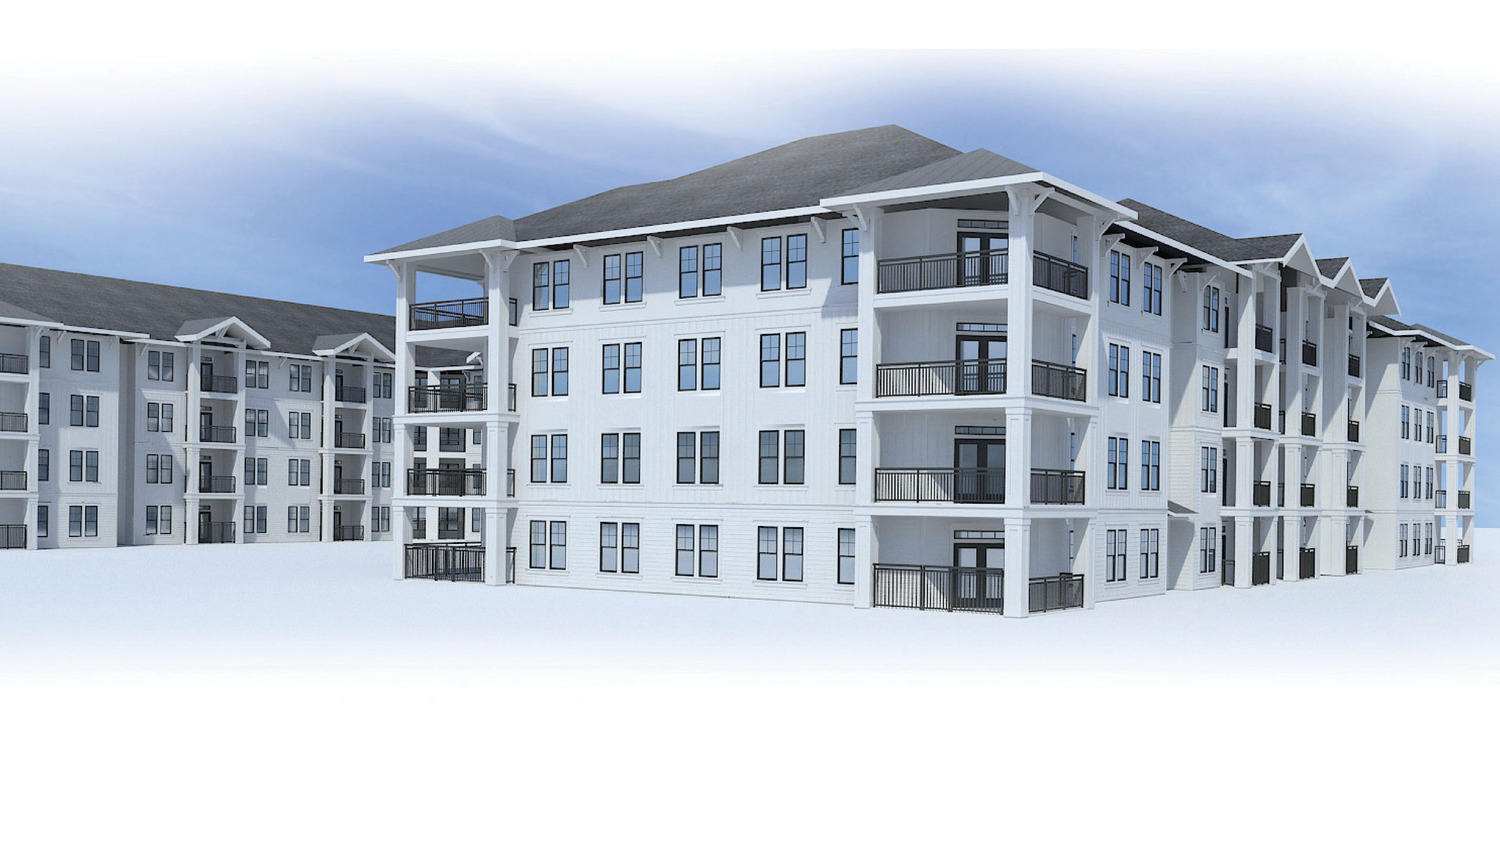 CBG builds Woodfield Waterset, a 400-Unit, Community Across Seven Buildings in a Master-Planned Development in Apollo Beach, FL - Image #1